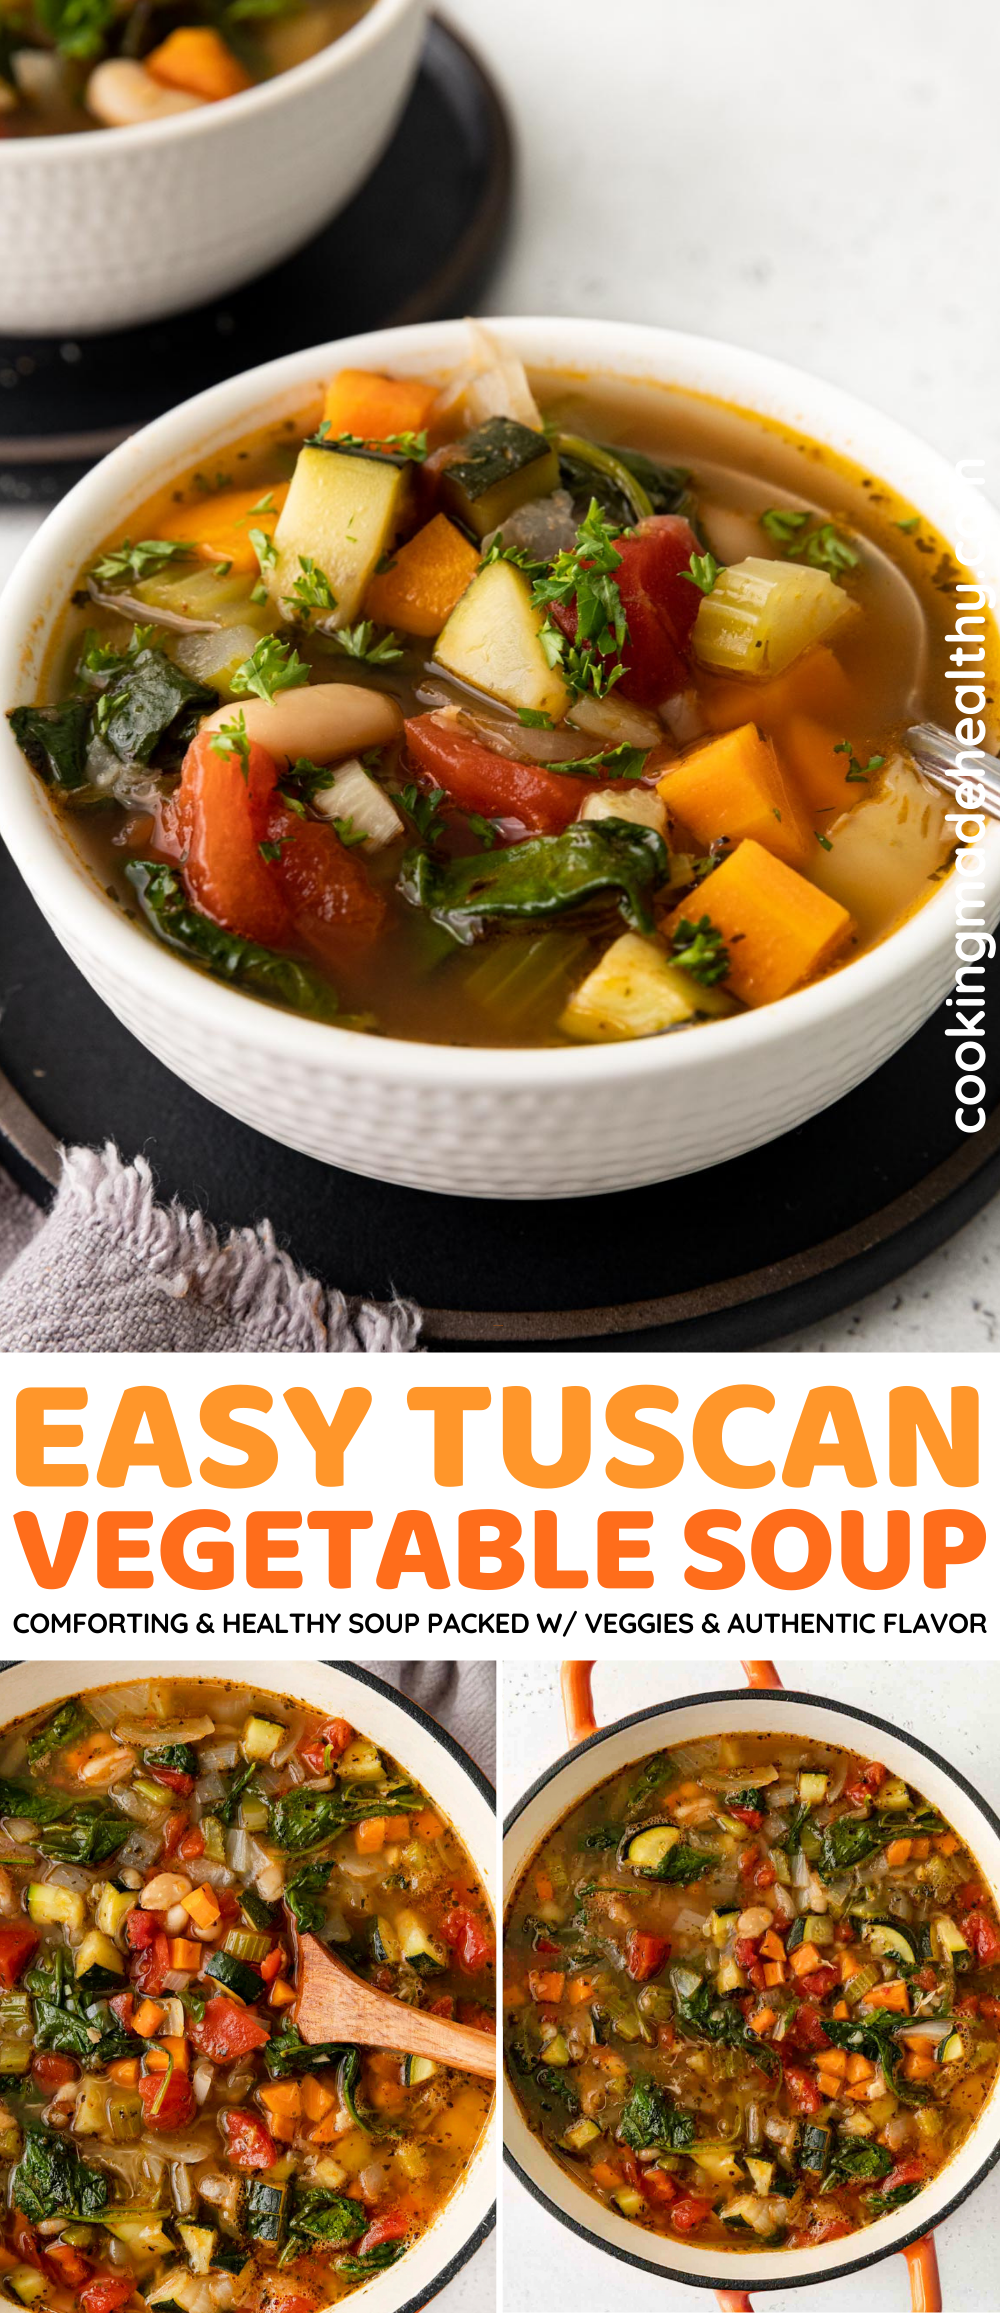 Tuscan Vegetable Soup Collage